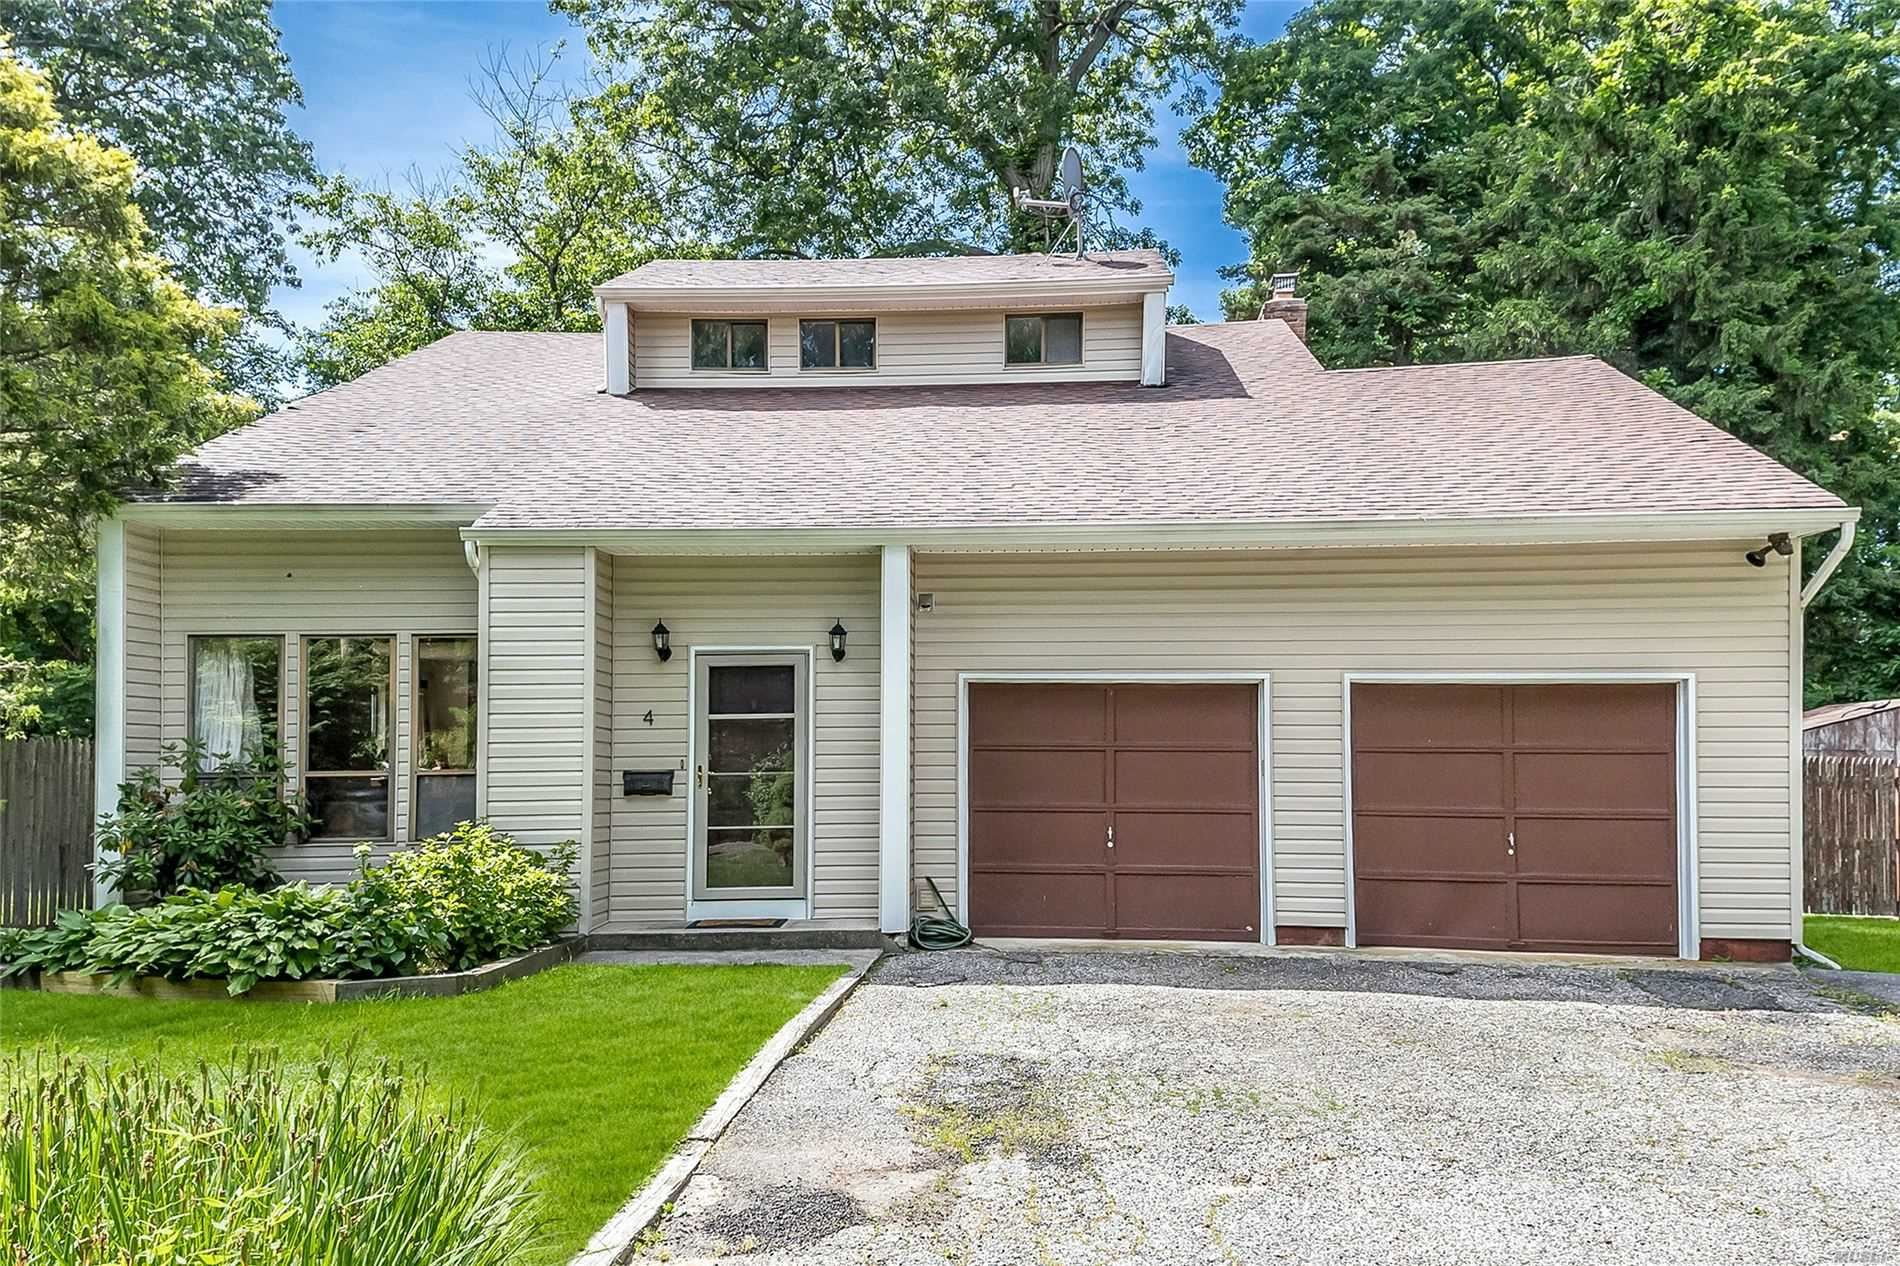 4 Mather Ct, Huntington Station, NY 11746 - MLS#: 3223467